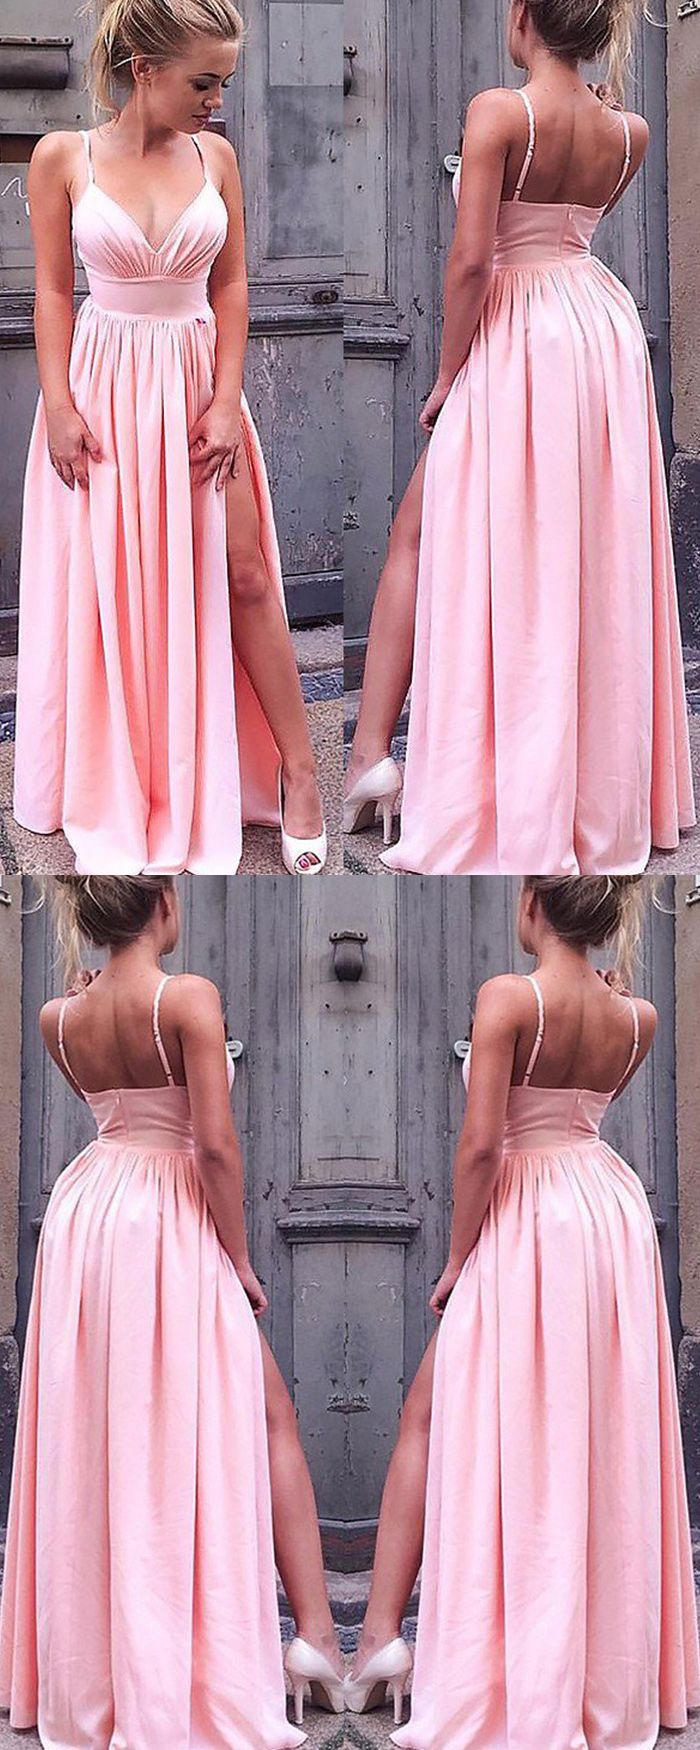 Spaghetti Straps Pink Pleated Long Prom Dress with Side Slit PM1118 is part of Prom dresses long pink - We offer high quality spaghetti straps pink pleated long prom dress with side slit, custom size and color, no extra cost, enjoy your shopping!